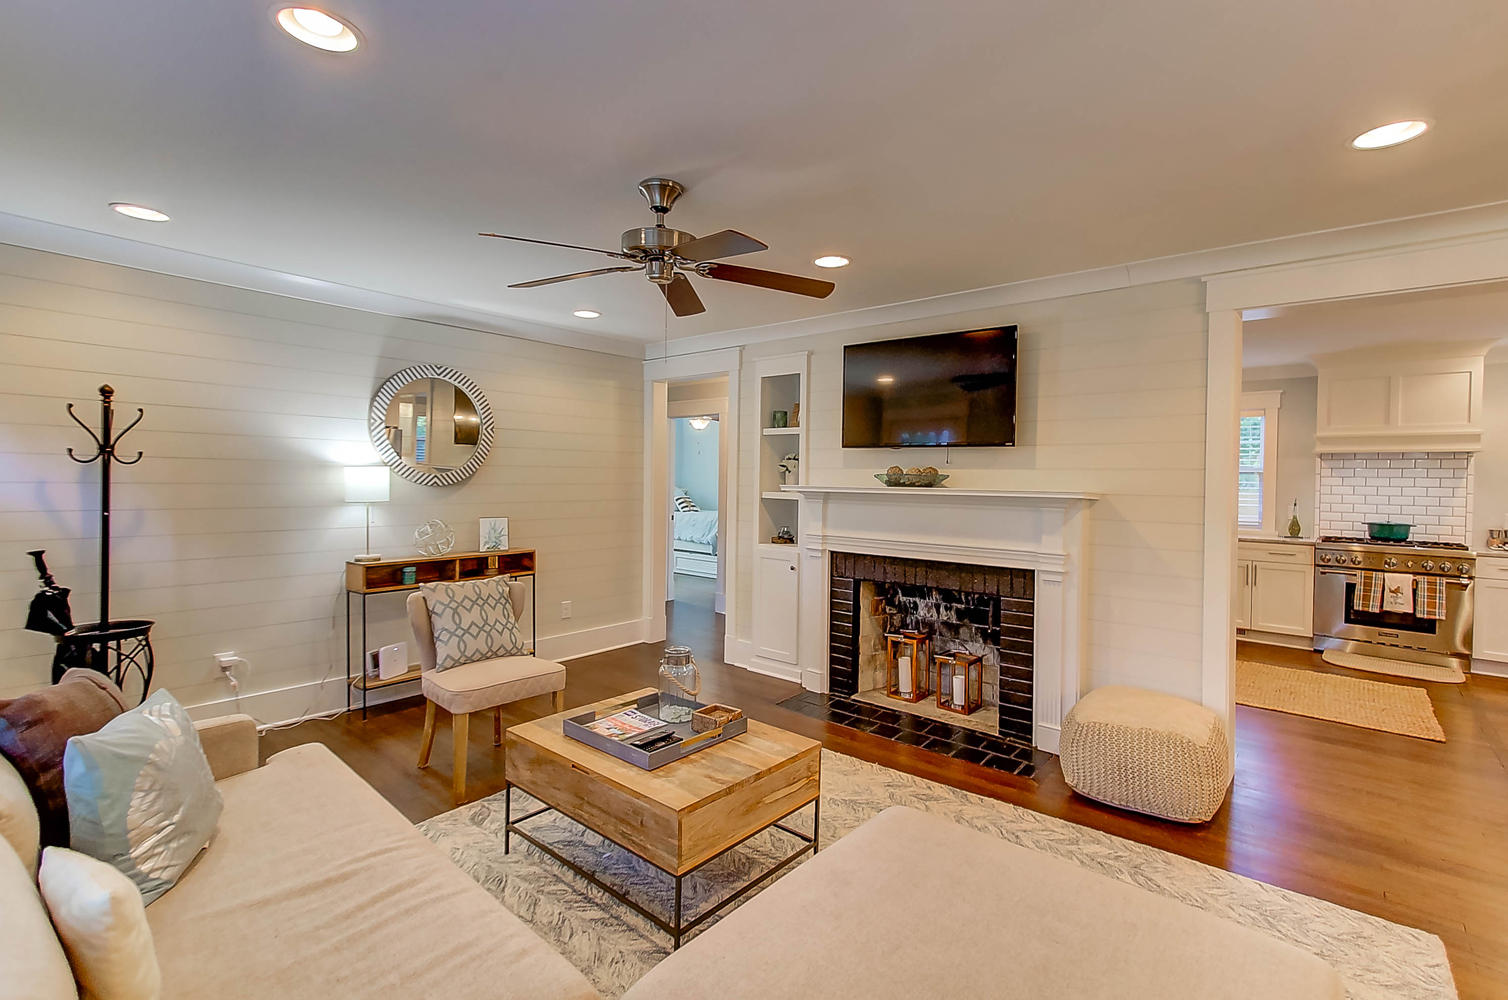 Riverland Terrace Homes For Sale - 2138 Wappoo, Charleston, SC - 6